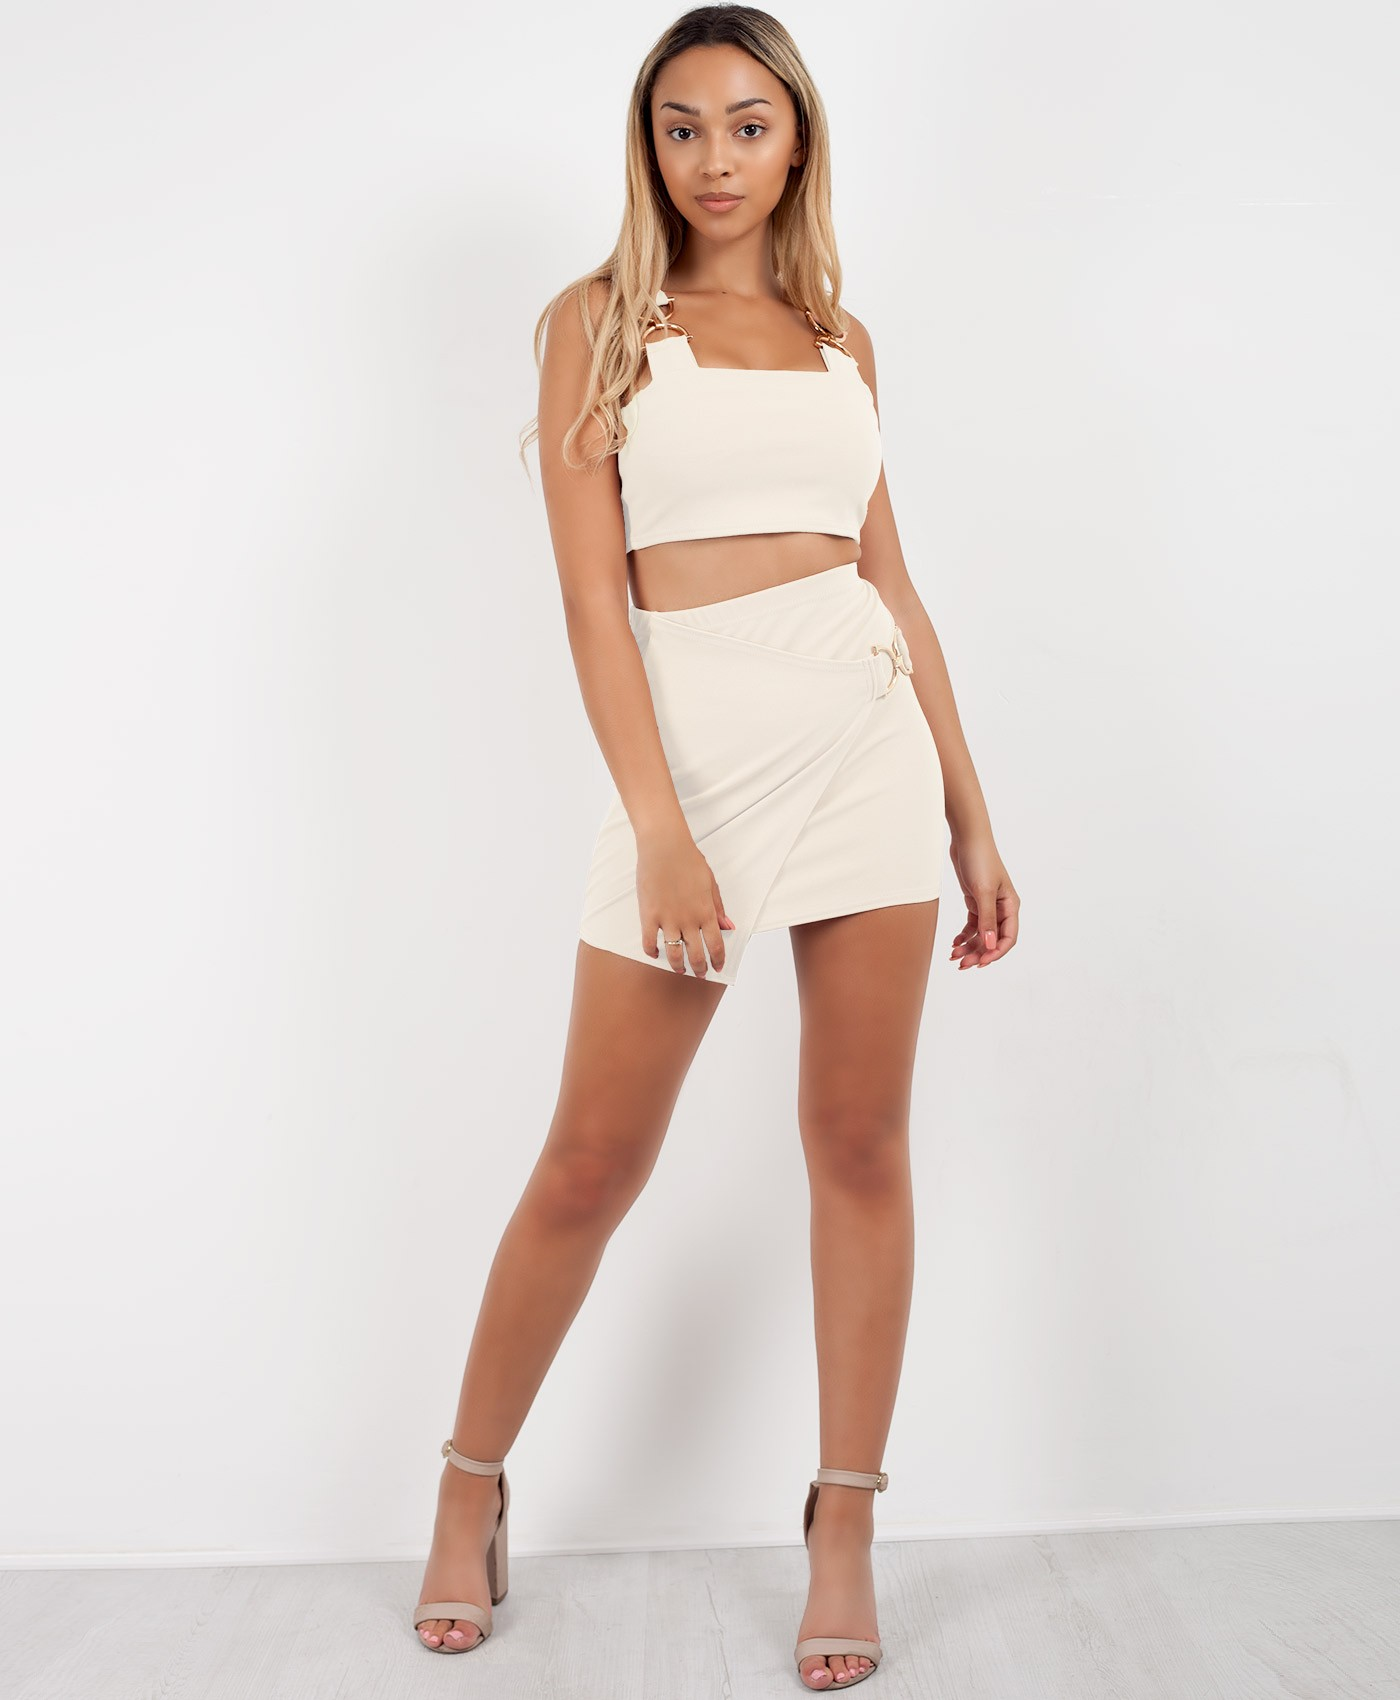 White-D-Buckle-Crop-Top-Wrap-Over-Skirt-Co-Ord-Set-1